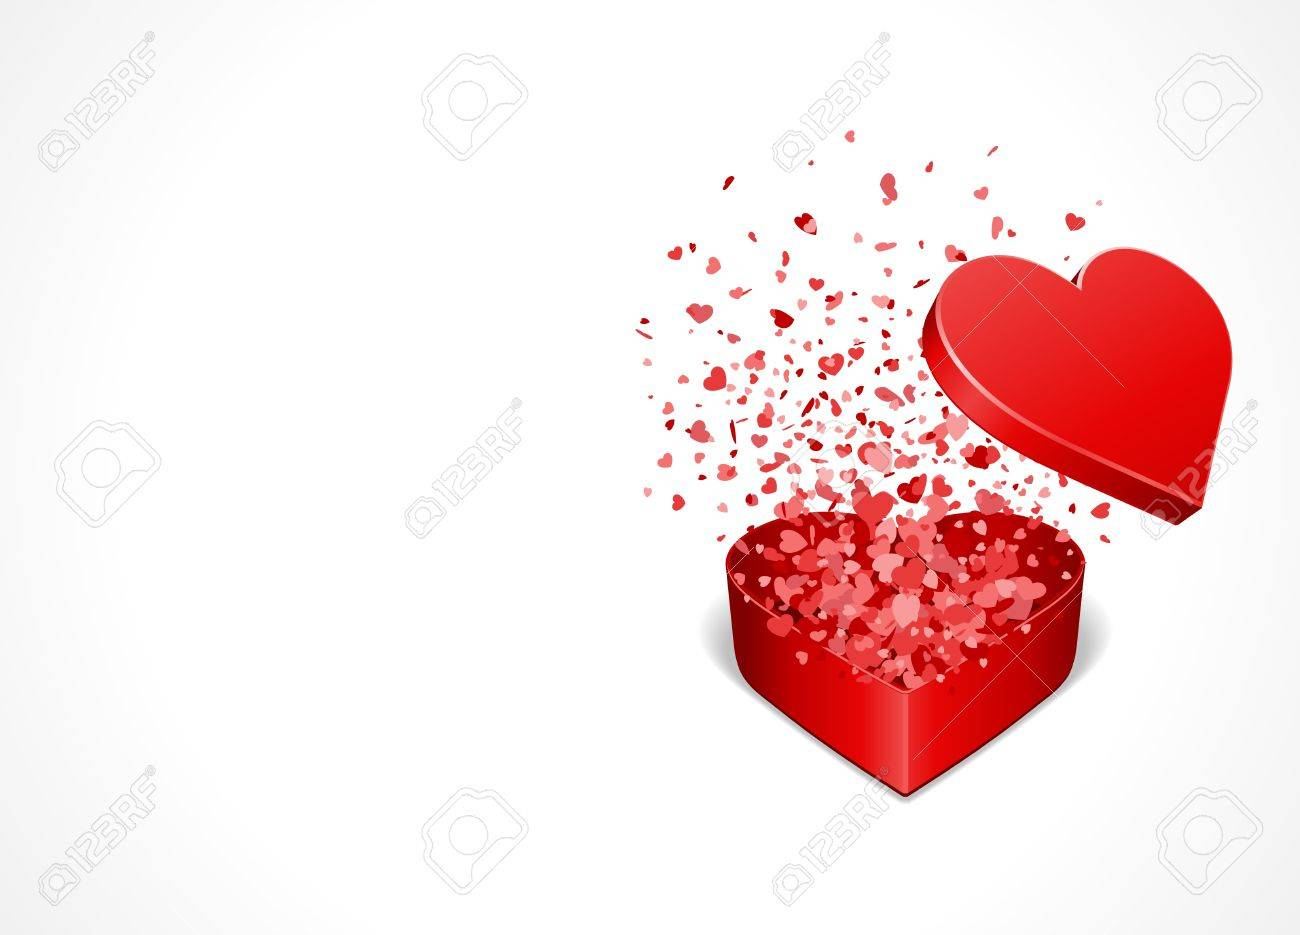 Heart gift present with fly hearts Valentine day vector background Stock Vector - 11895262